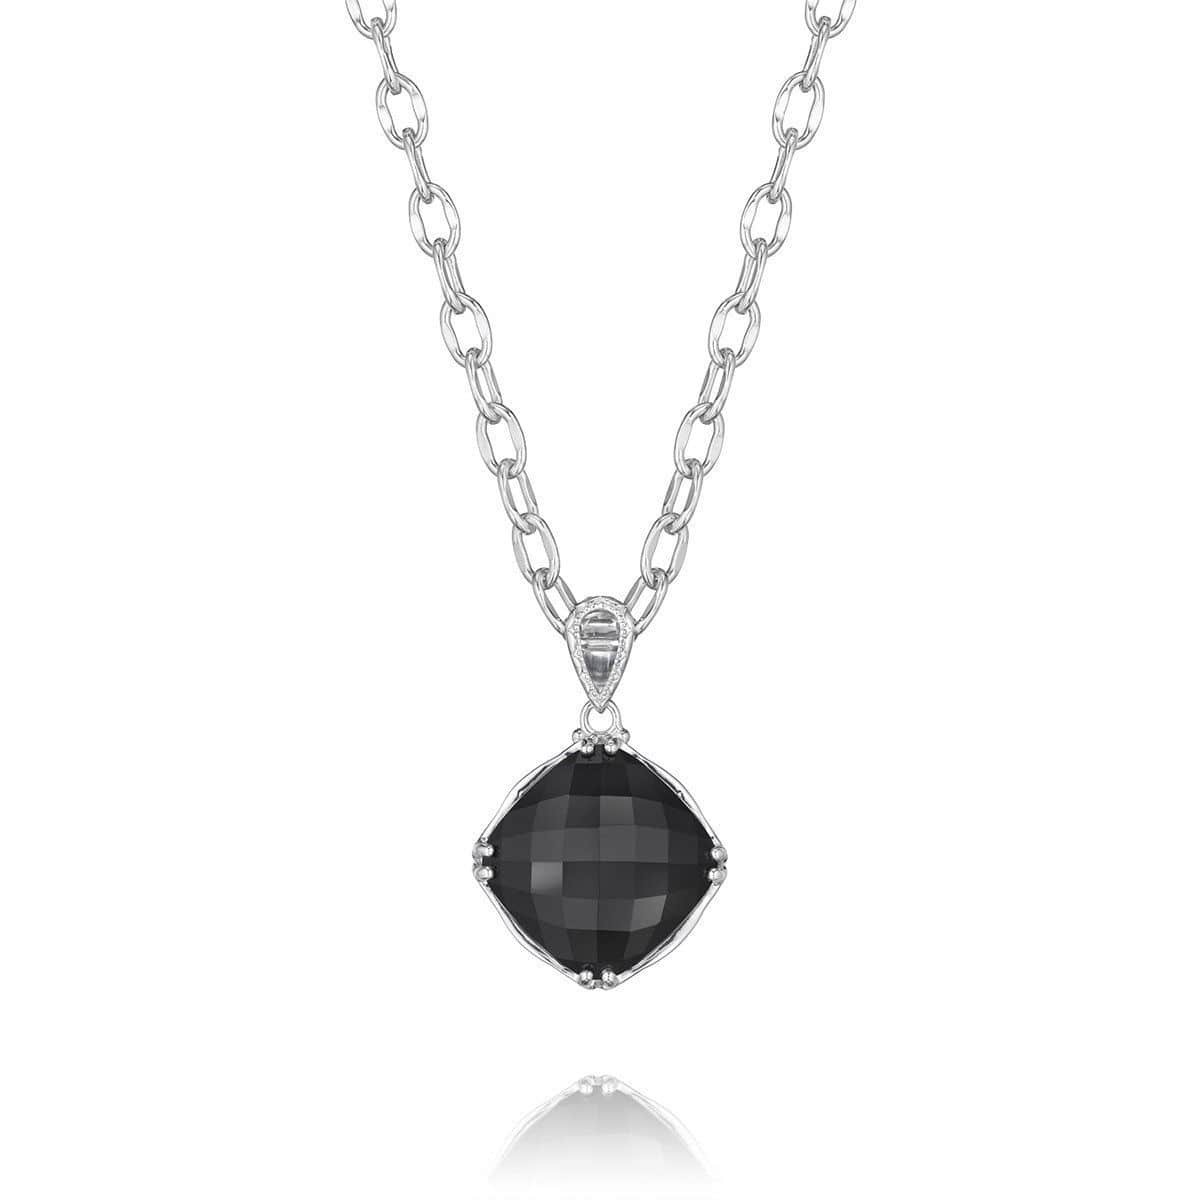 Silver Black Onyx Classic Rock Oval Pendant- SN12819-Tacori-Renee Taylor Gallery